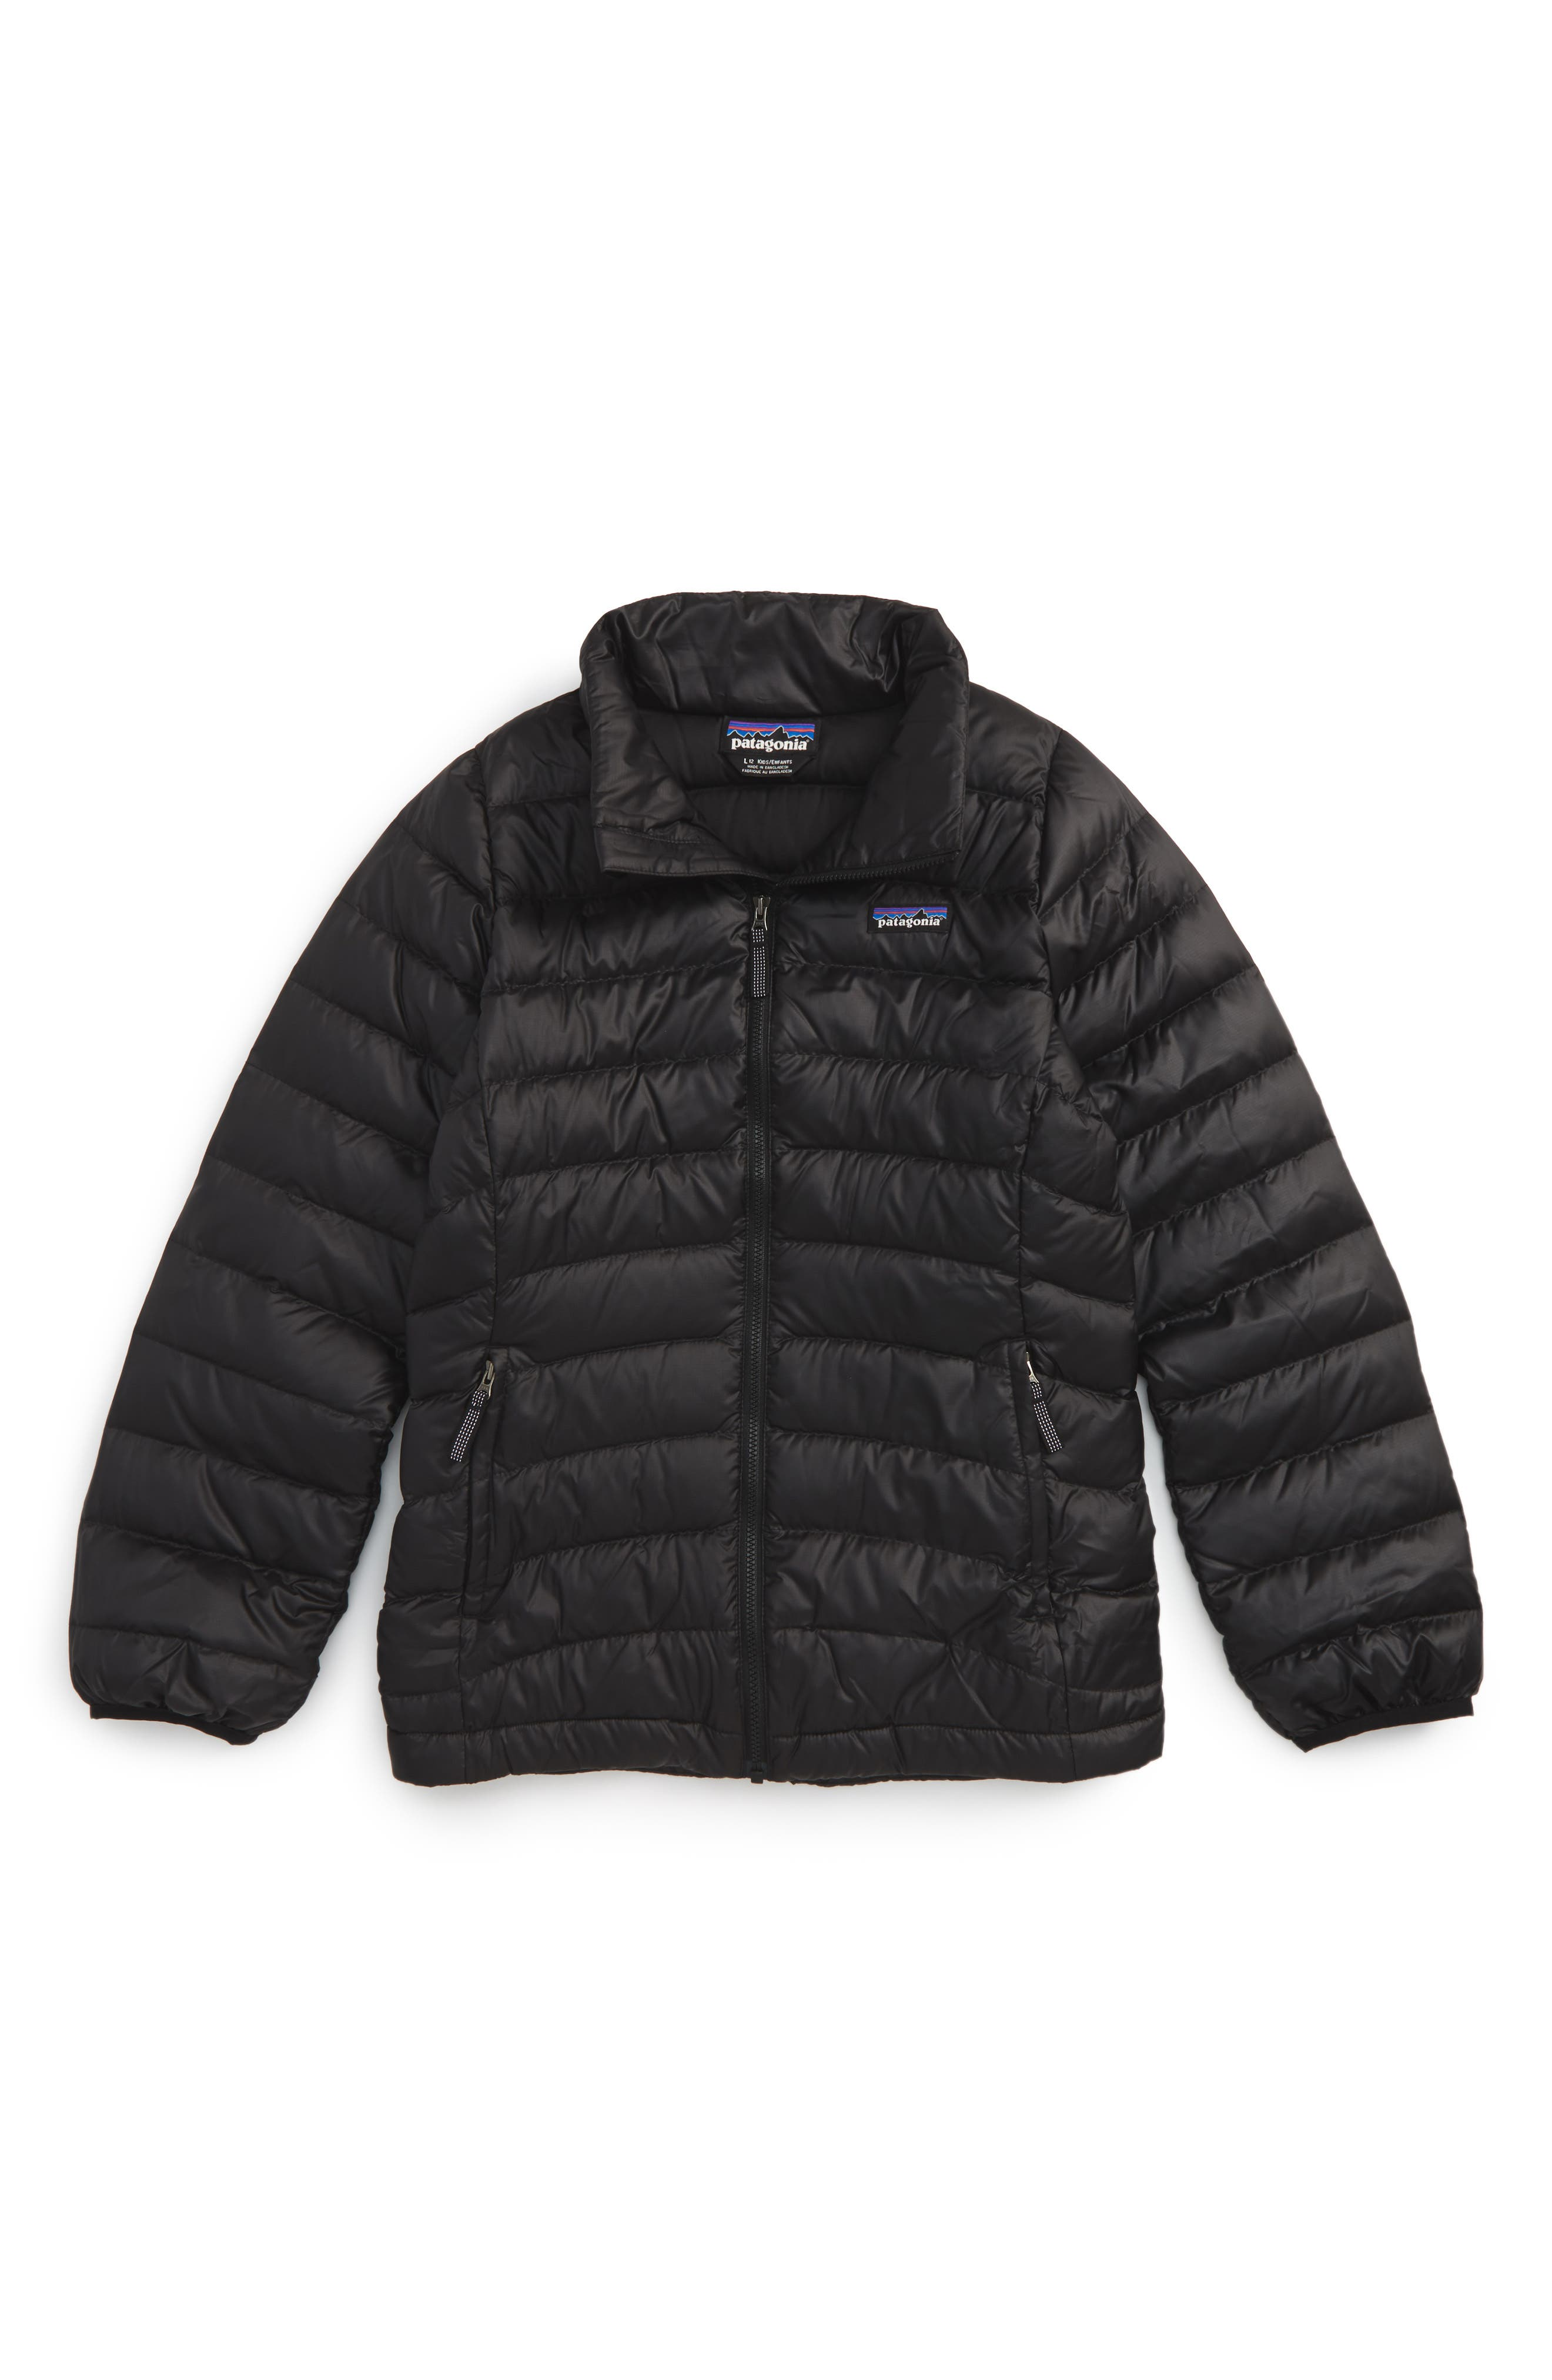 22ffdf25c3a97 Kids  Patagonia Coats   Jackets